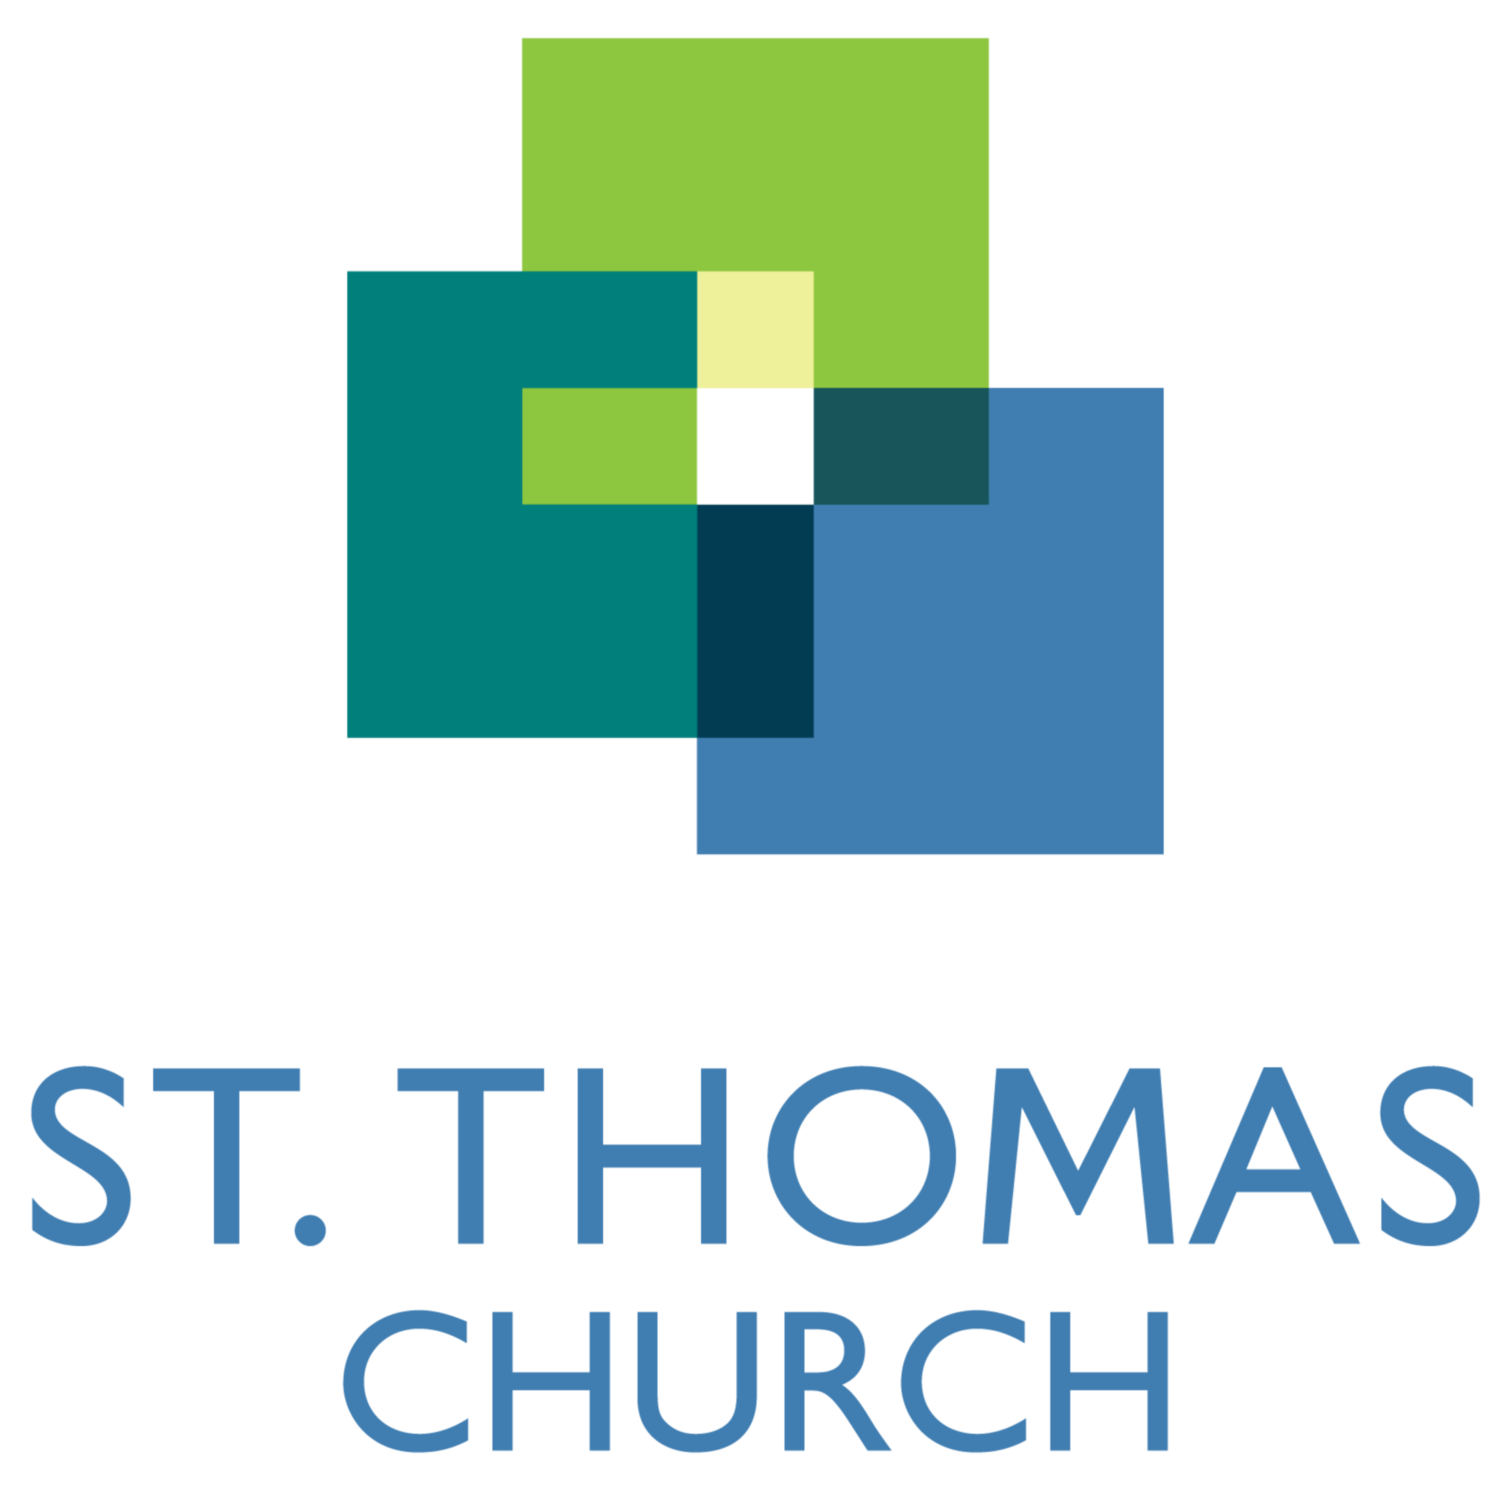 St. Thomas Church: Worship God. Follow Jesus. Be Known for Love.